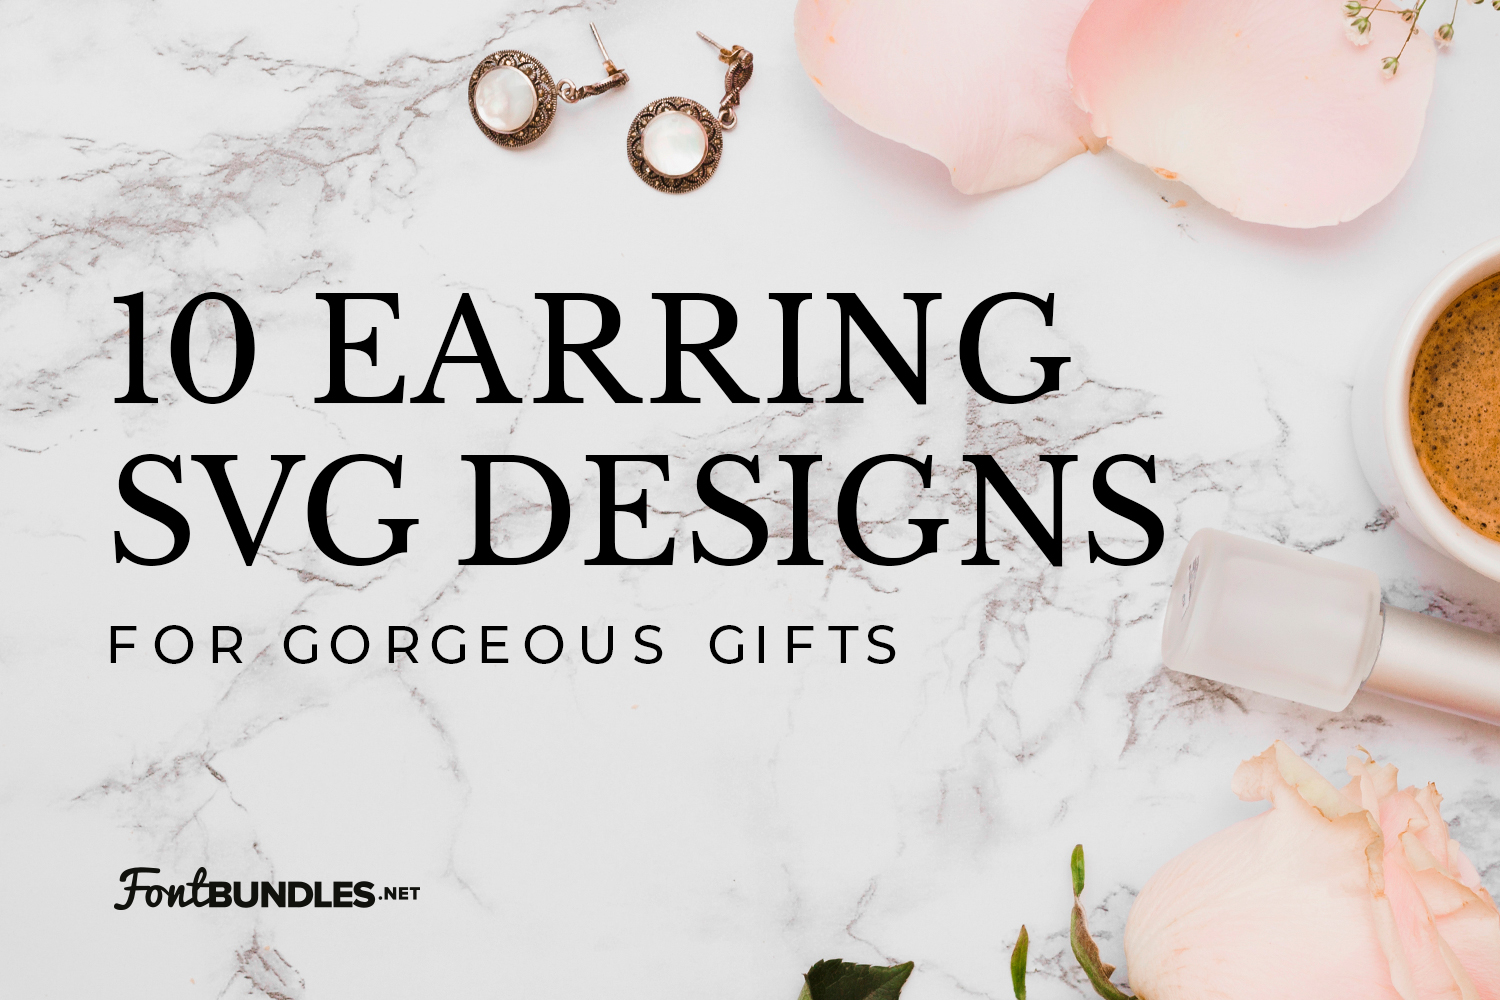 10 Earring SVG Designs for Gorgeous Gifts